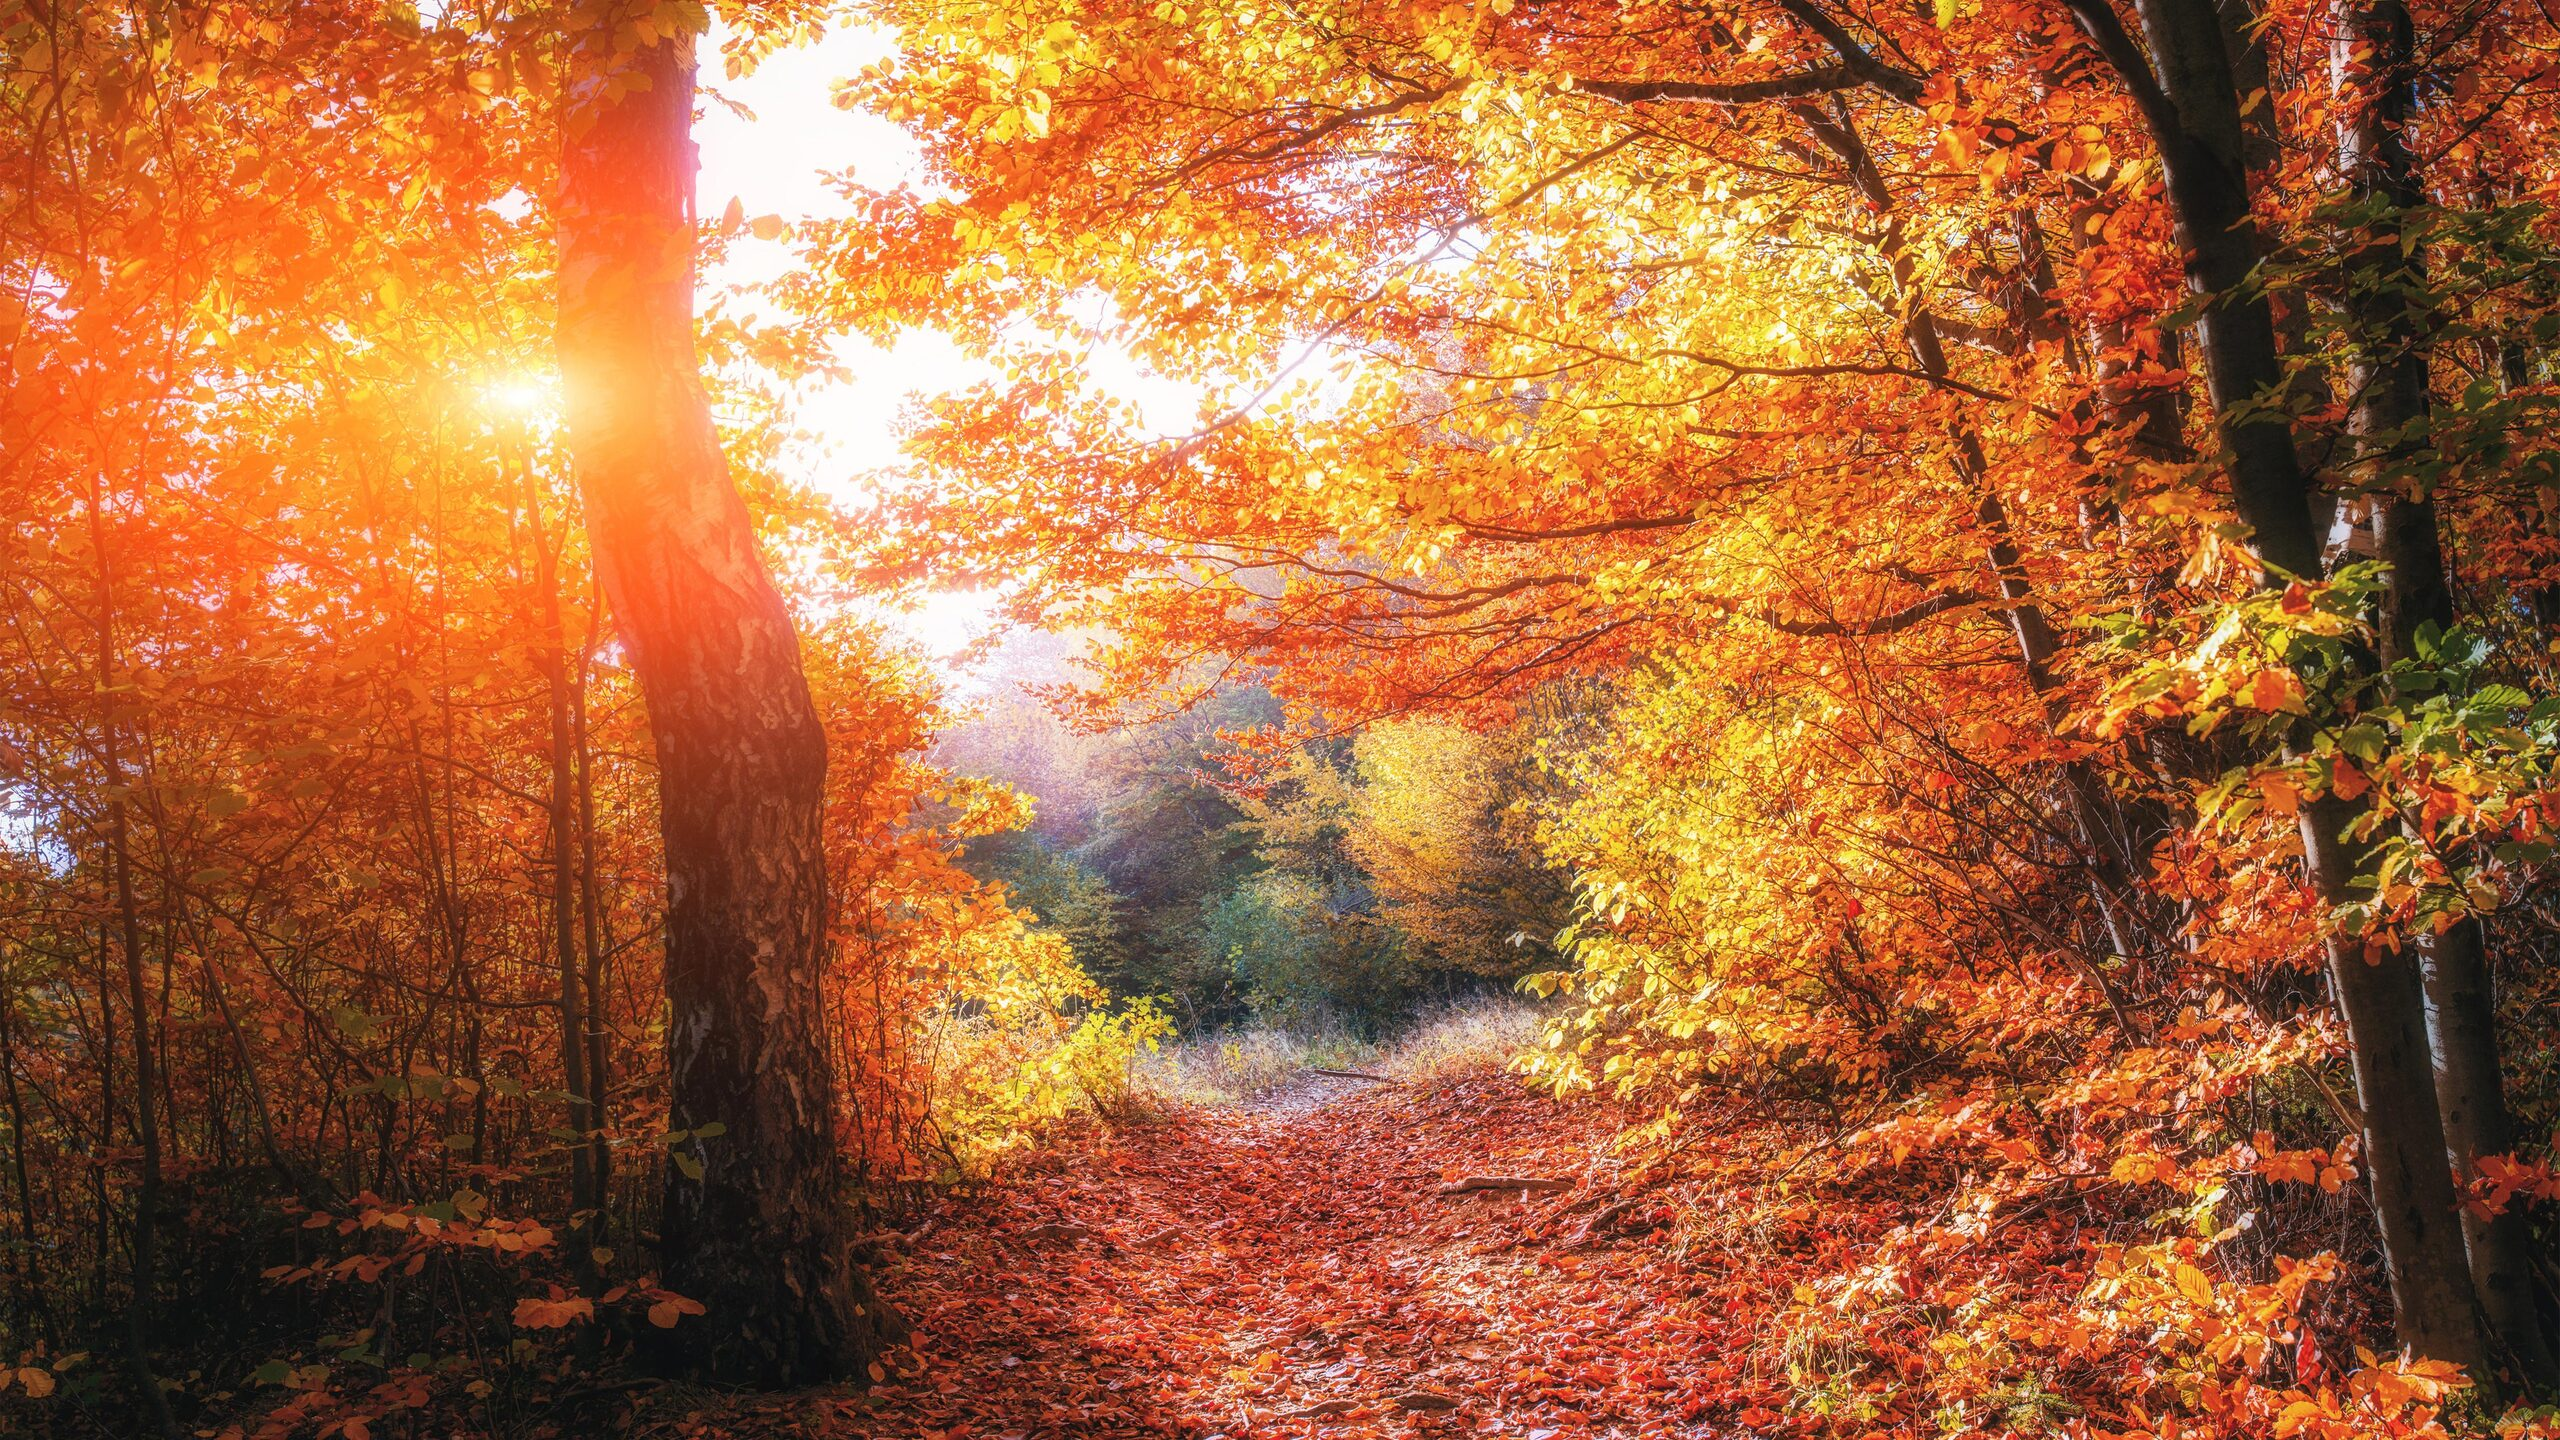 1440x2560 Uhd Wallpaper Fall 2560x1440 Autumn Forests Leaves Fall 5k 1440p Resolution